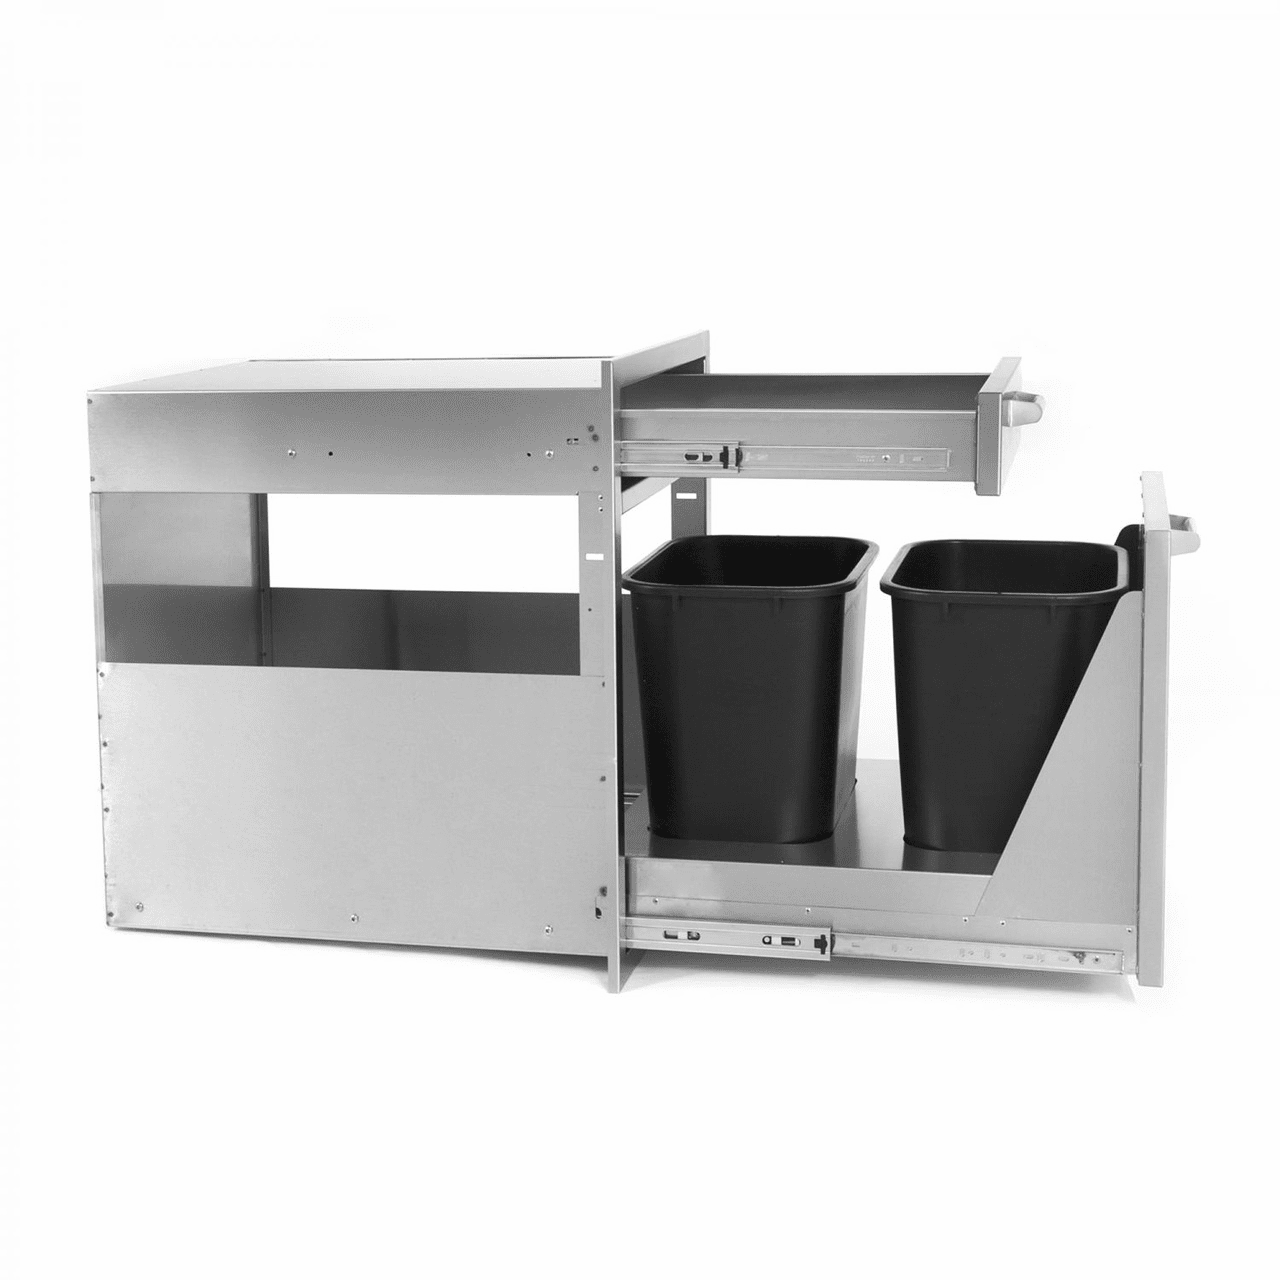 PCM 350H Series Trash - recycle Drawer Combo PCM-350H-TR-HDR21